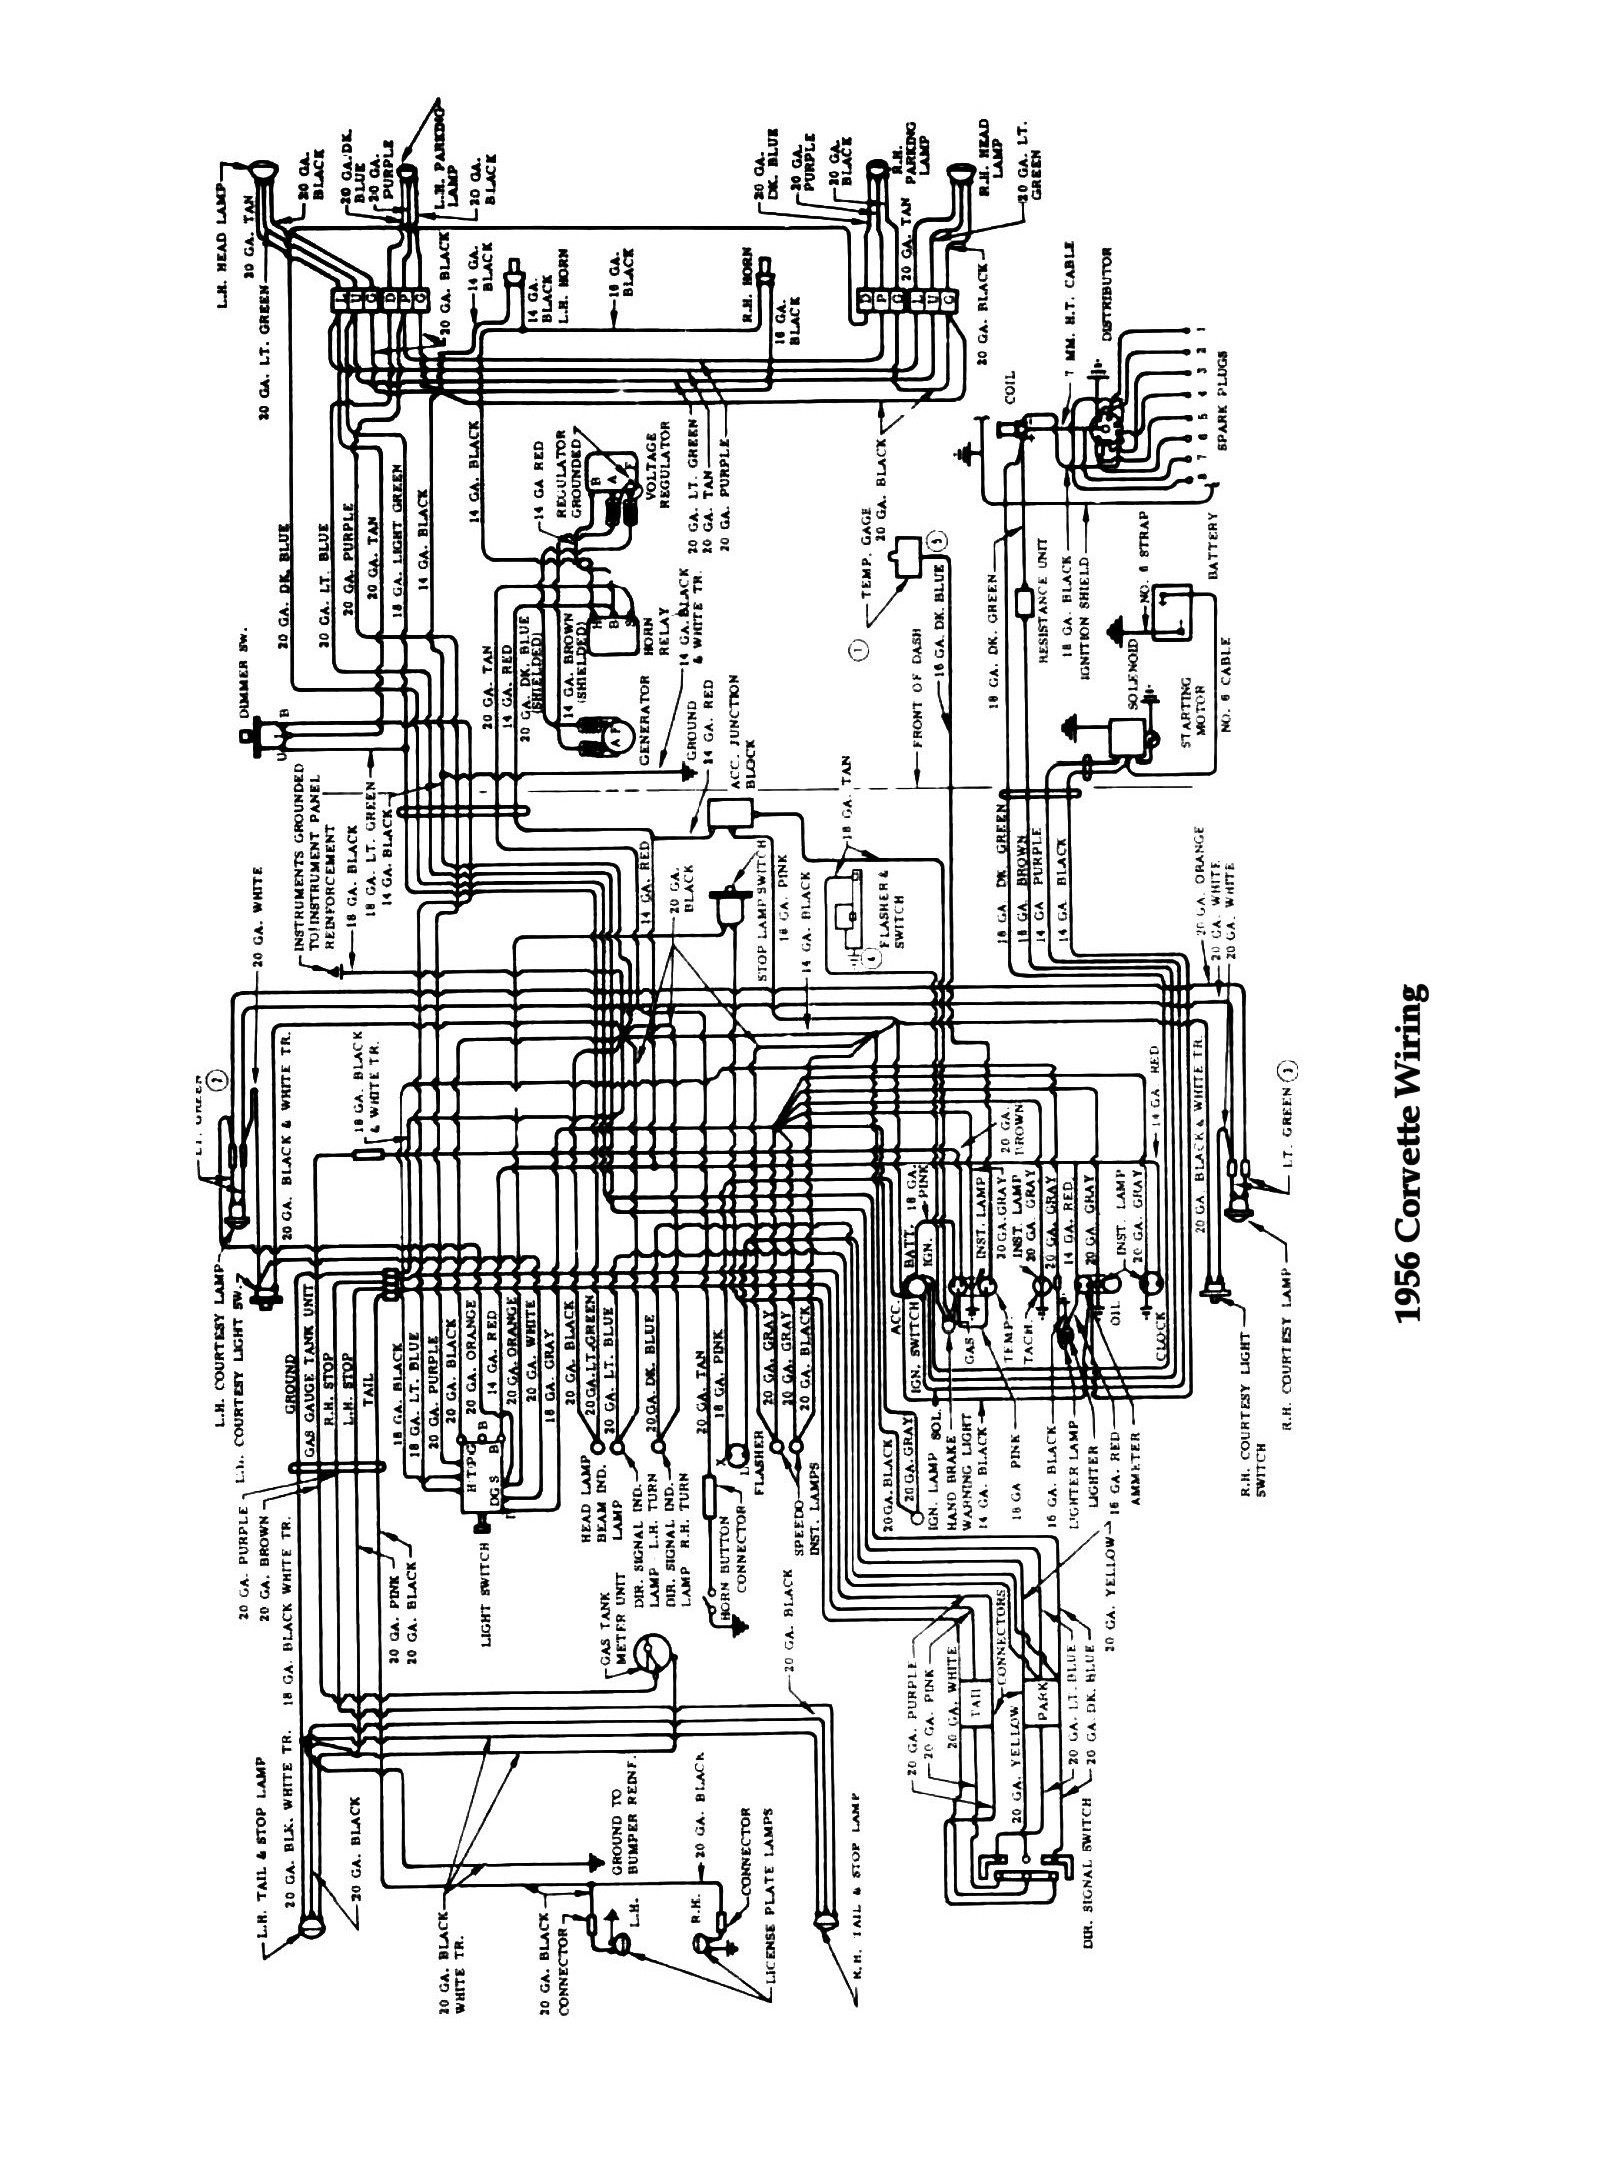 56 pontiac wiring diagram images gallery: 1980 pontiac firebird wiring  diagram at eklablog co